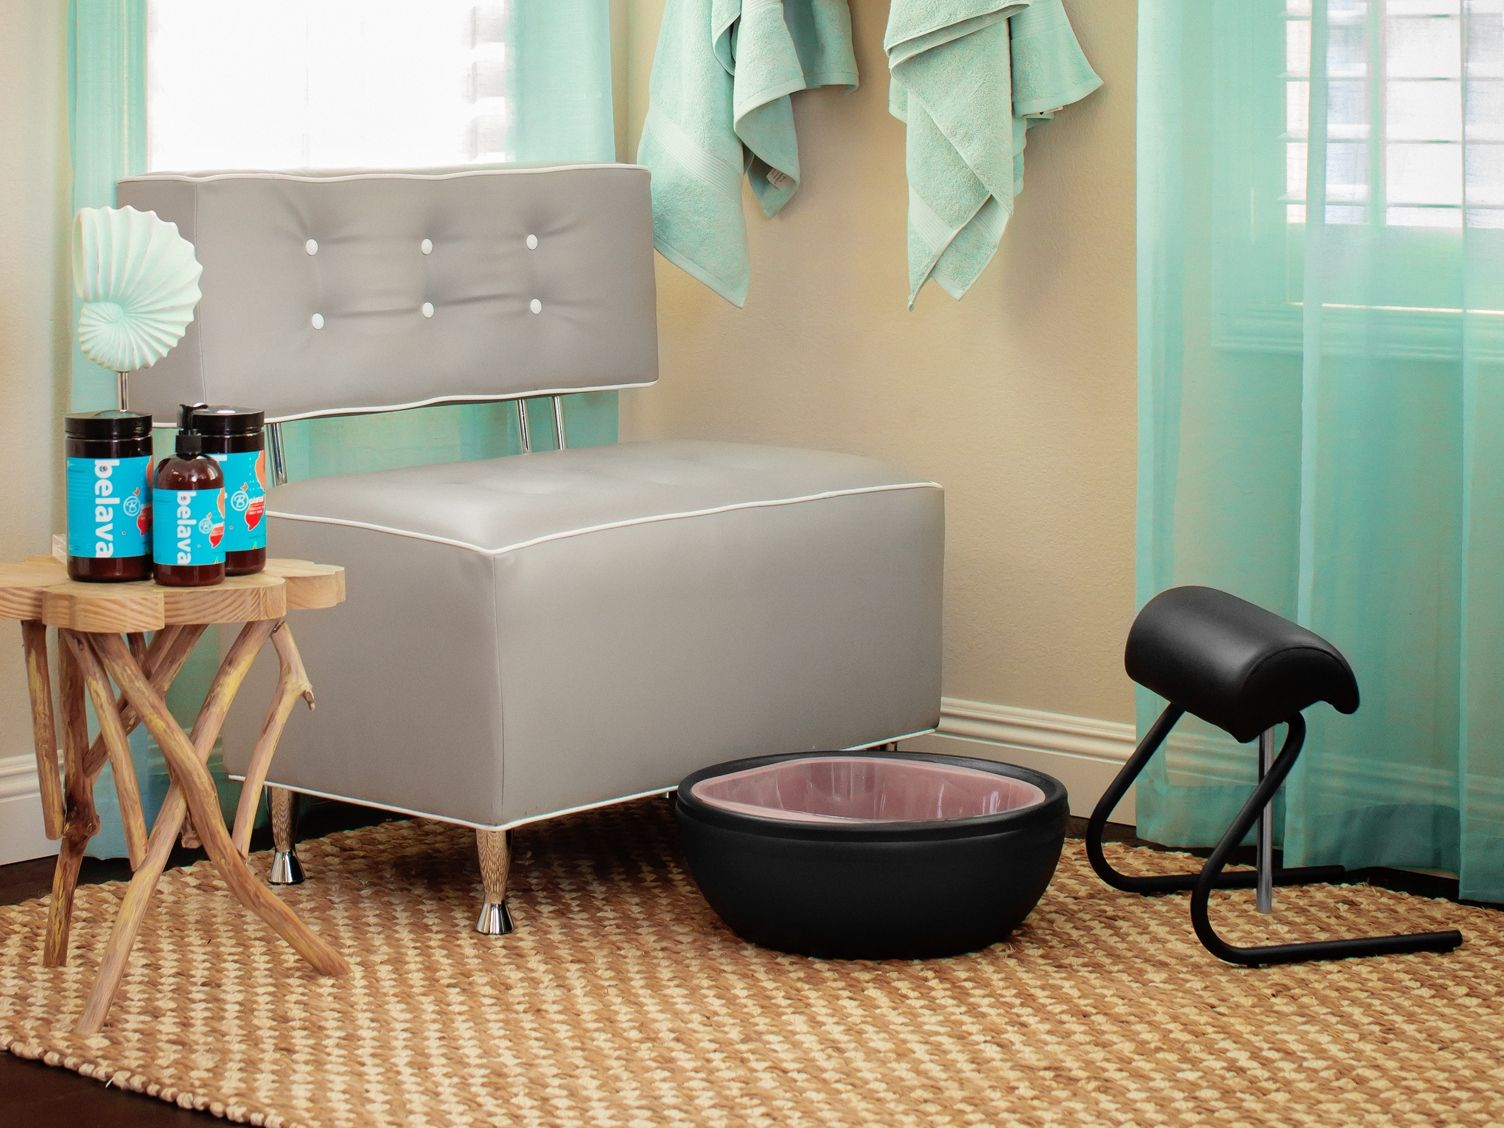 Pedicure Chair Ideas carrie pedicure chair at neroli spa beauty lounge interior design and furnishings by michele Find This Pin And More On No Plumbing Pedicure Chairs